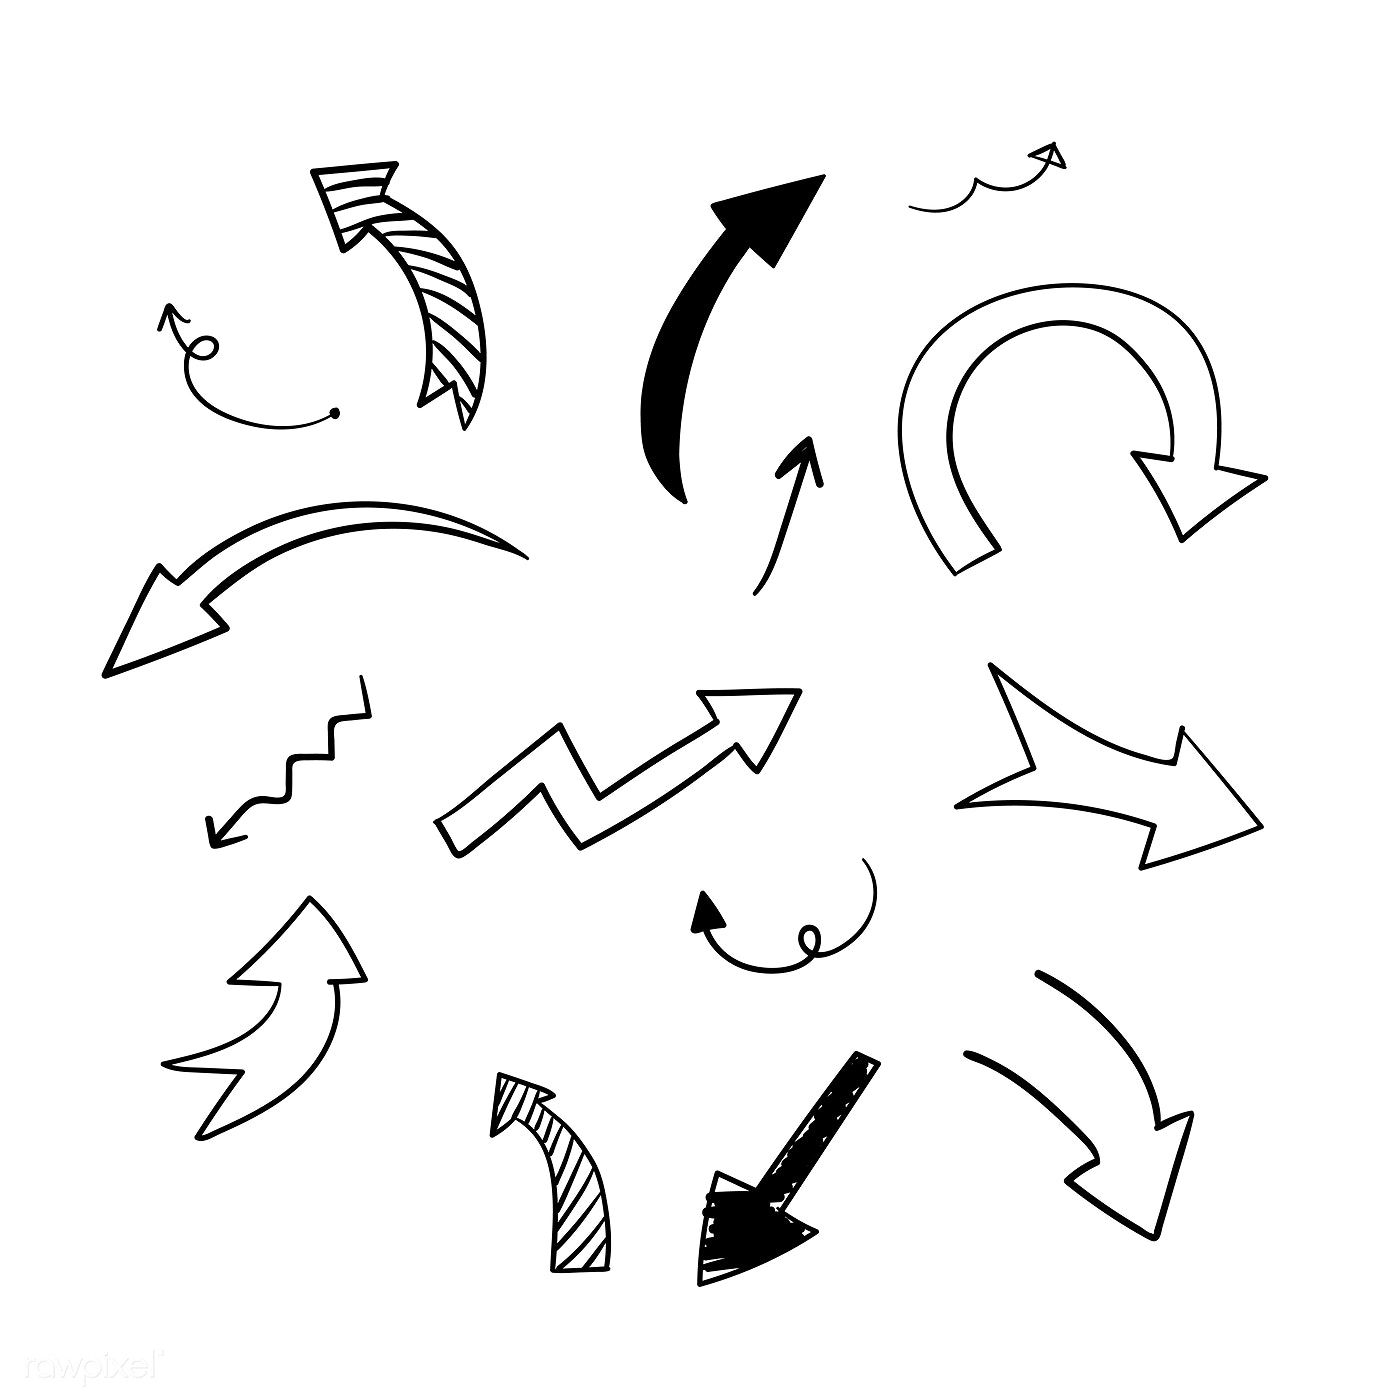 Hand Drawn Doodle Arrows Vector Set Free Image By Rawpixel Com Filmful How To Draw Hands Creative Mind Map Hand Drawn Arrows